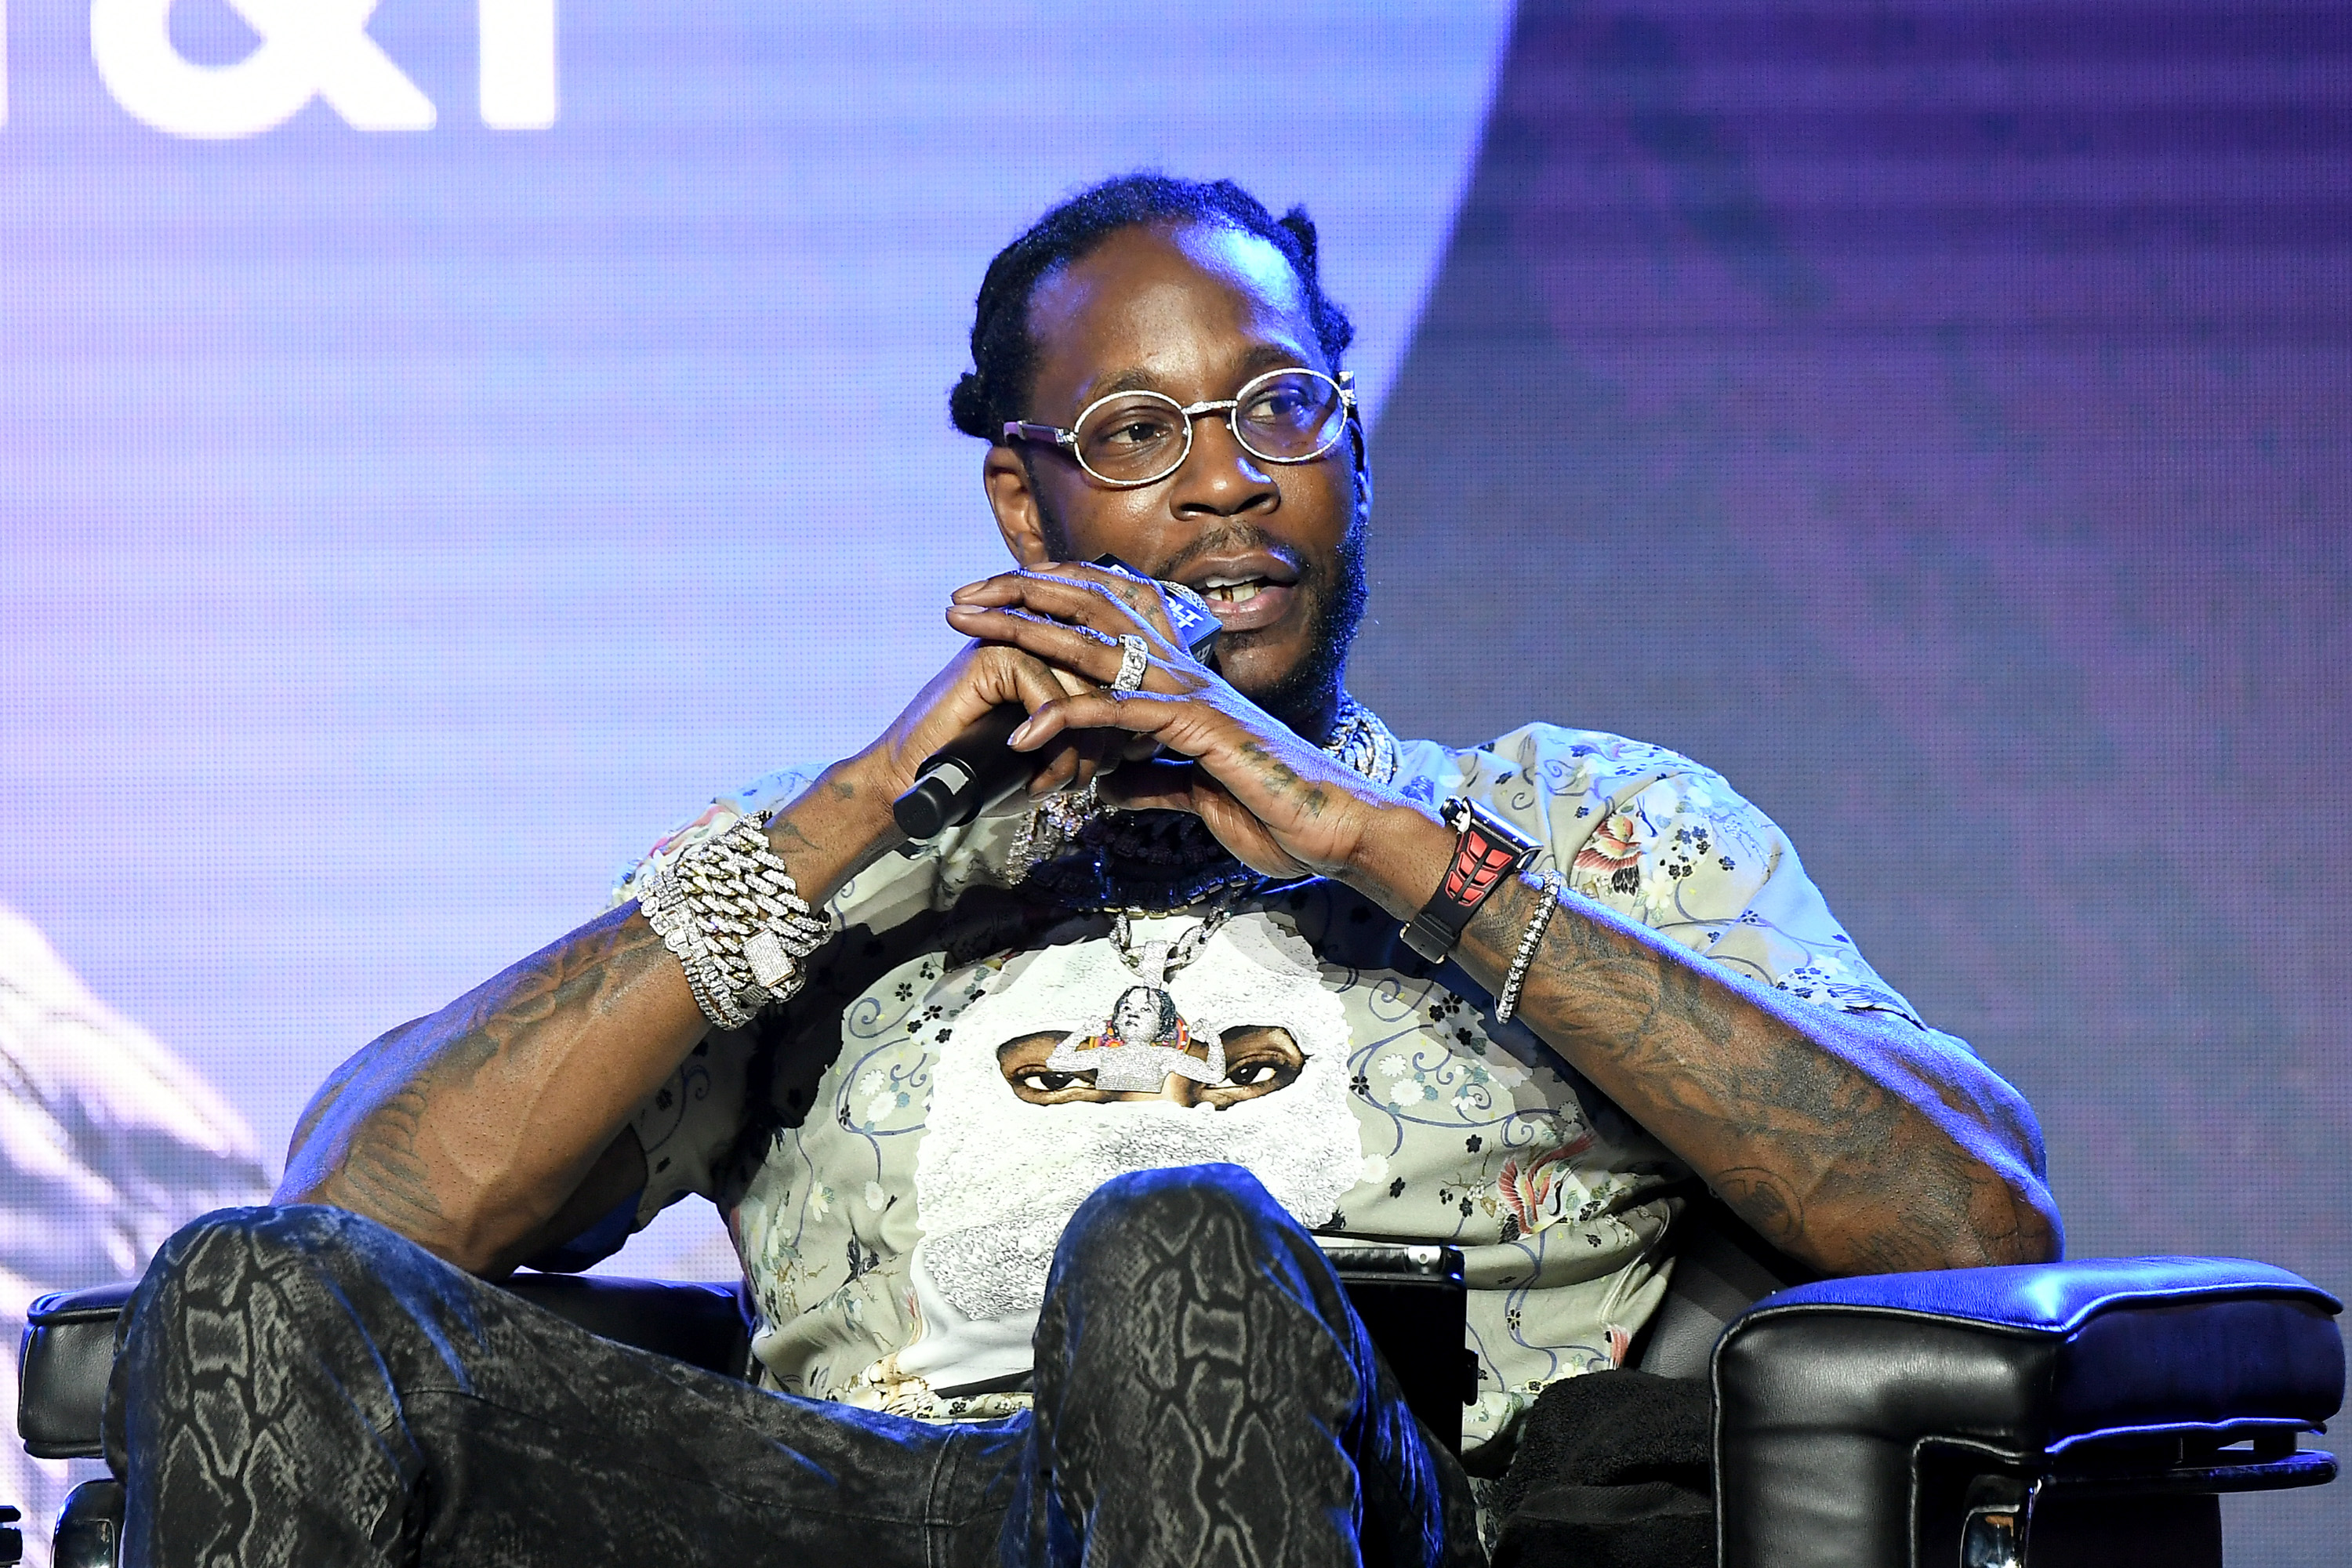 2 Chainz used his real life experiences to explain why being successful could be dangerous in the wake of Pop Smoke's passing.